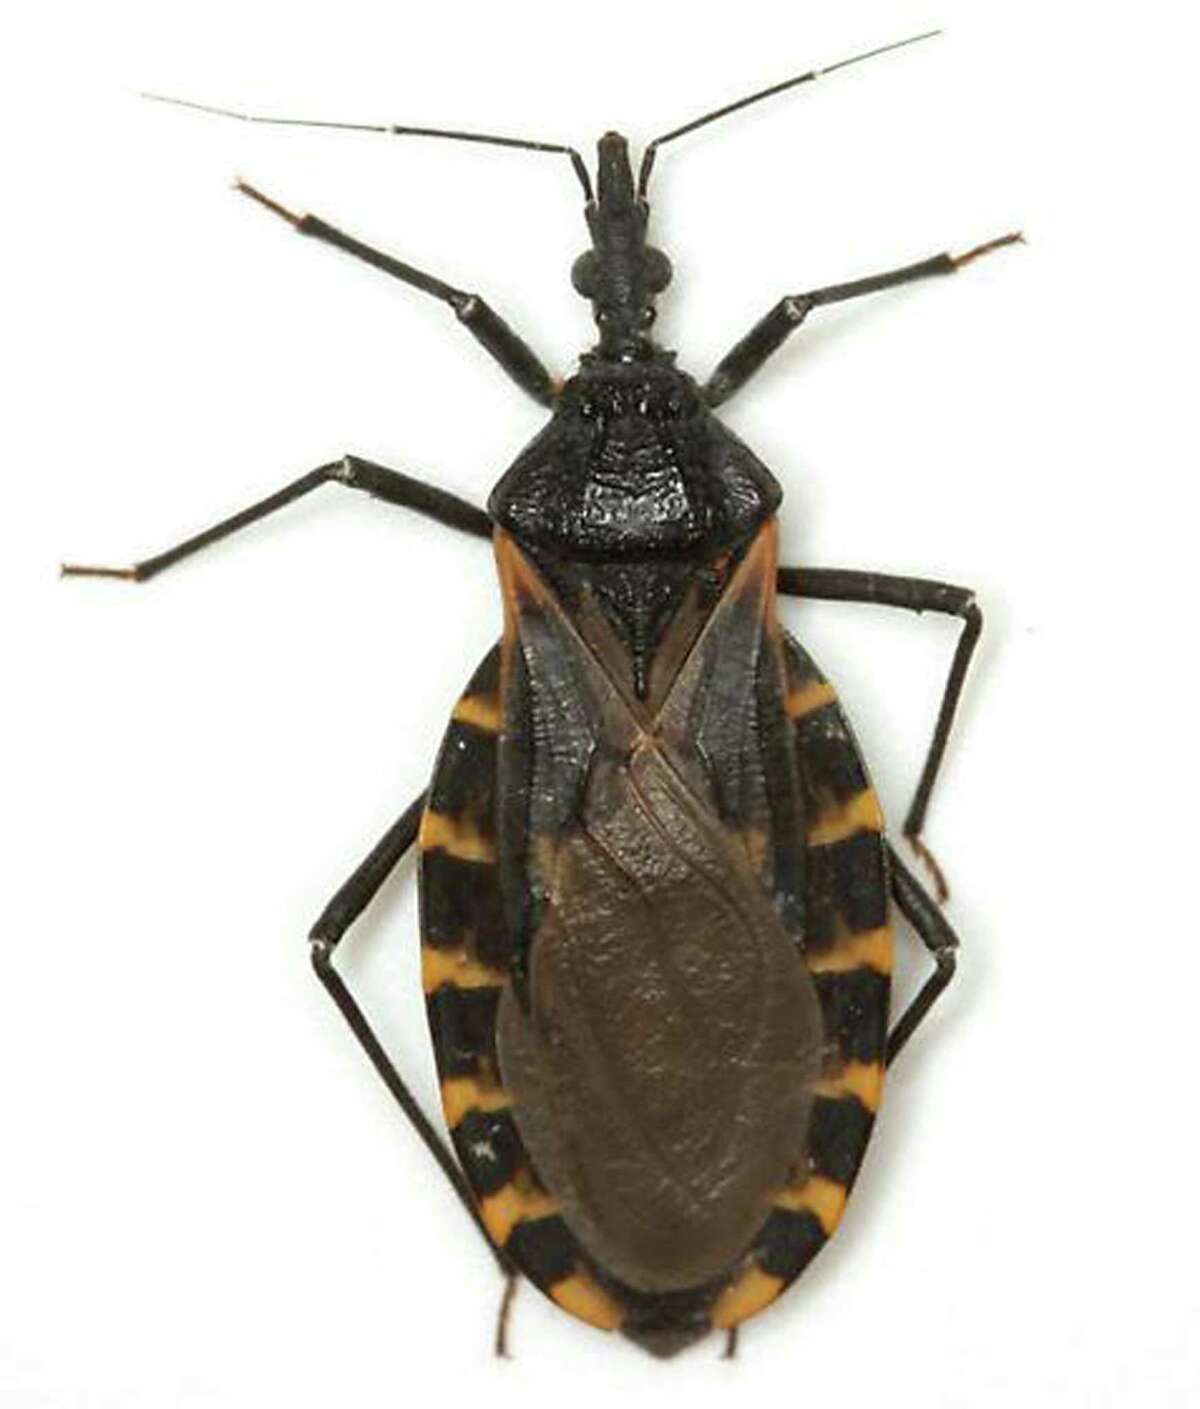 Experts say there has been an increase in the kissing bug population in Texas, potentially putting canines and humans at risk for Chagas.